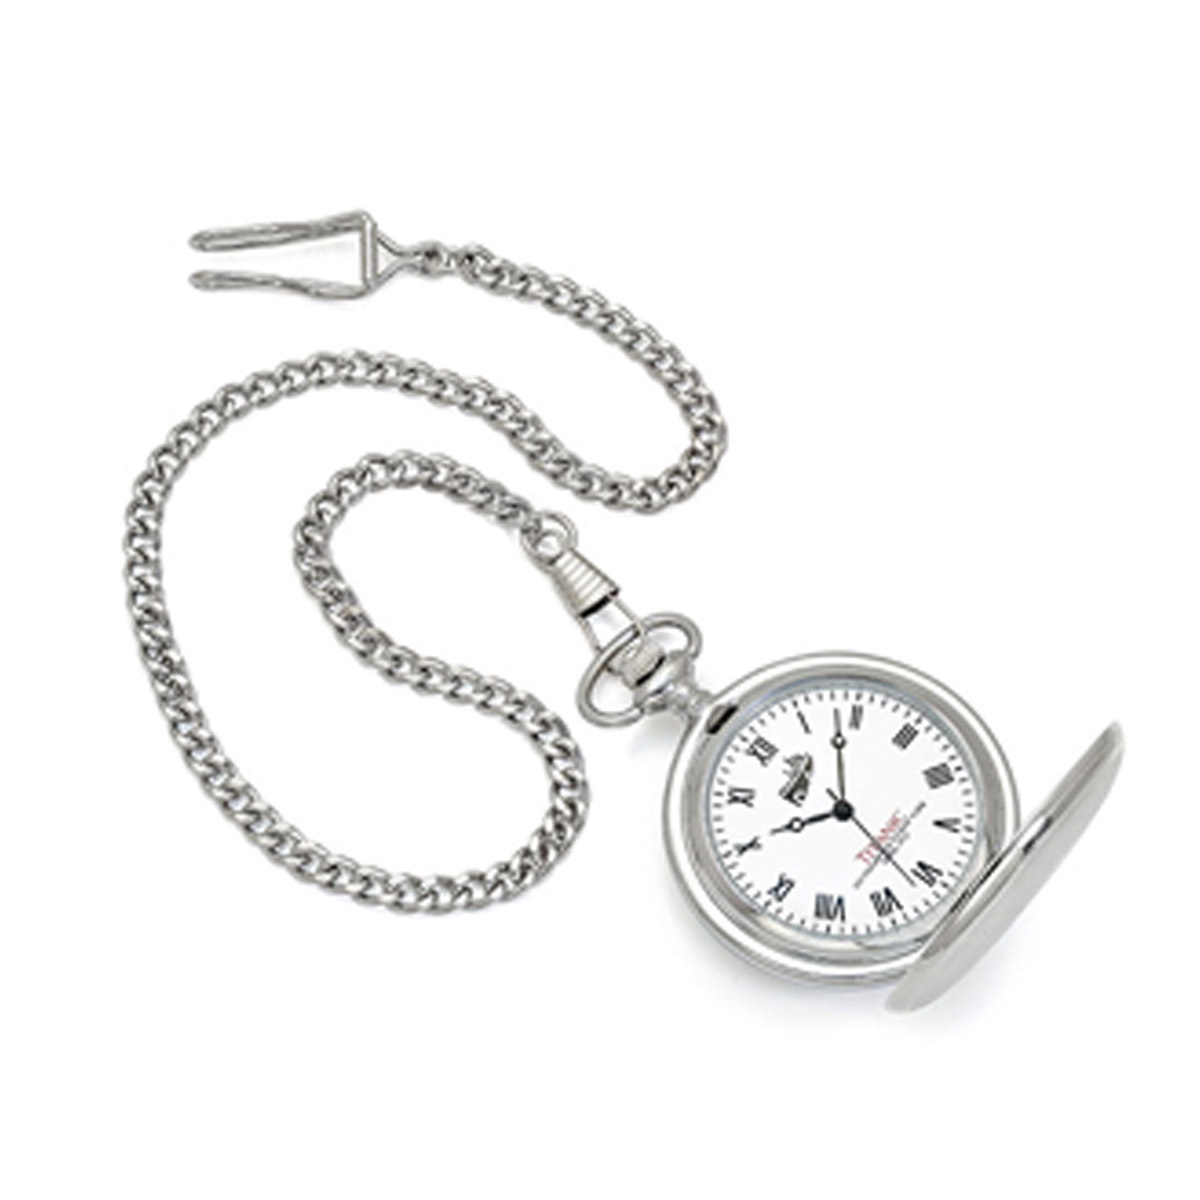 Men's Replica Pocket watch